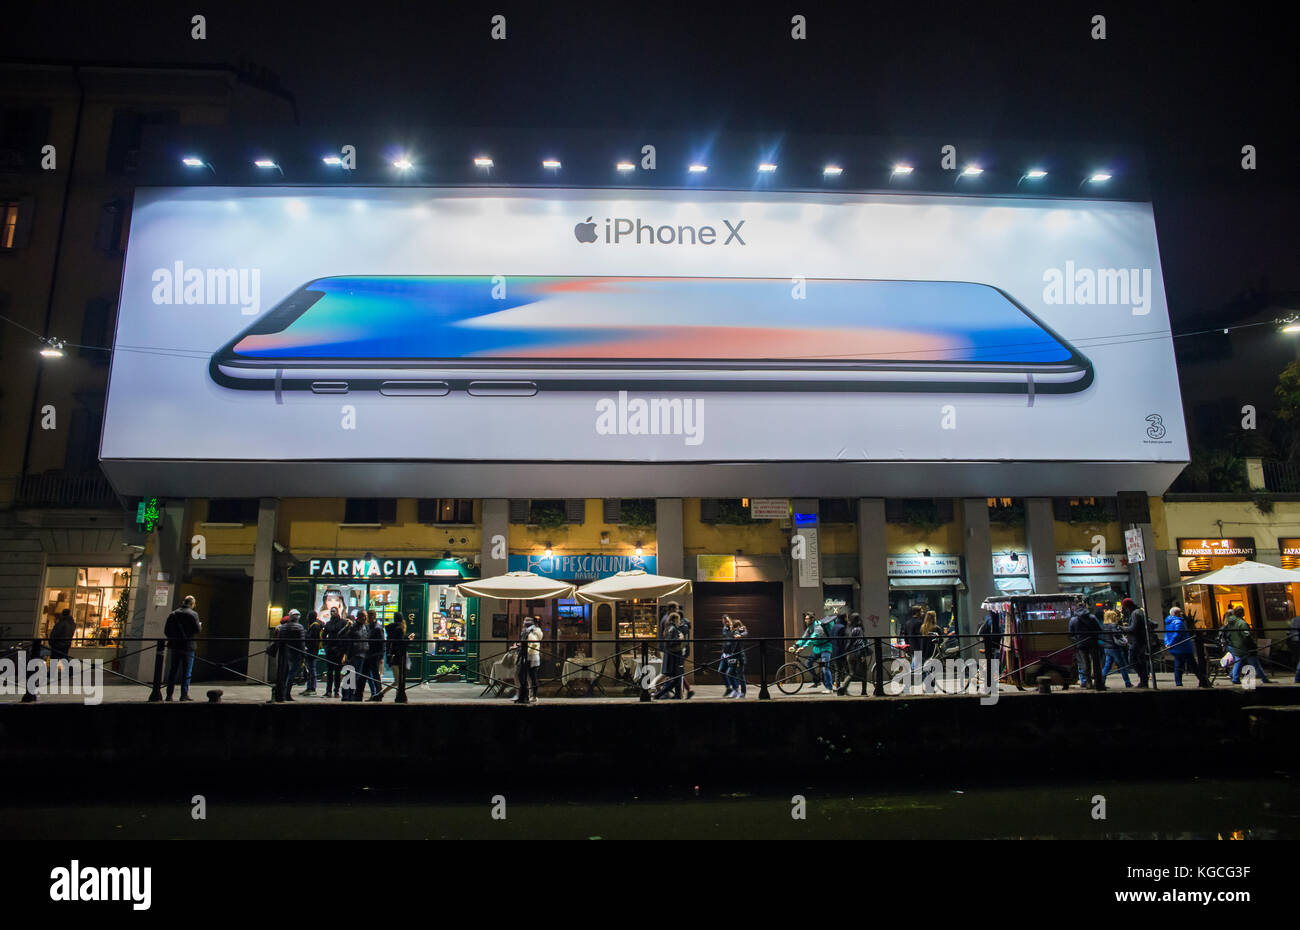 Iphone x stock photos iphone x stock images alamy for Iphone x 3 italia